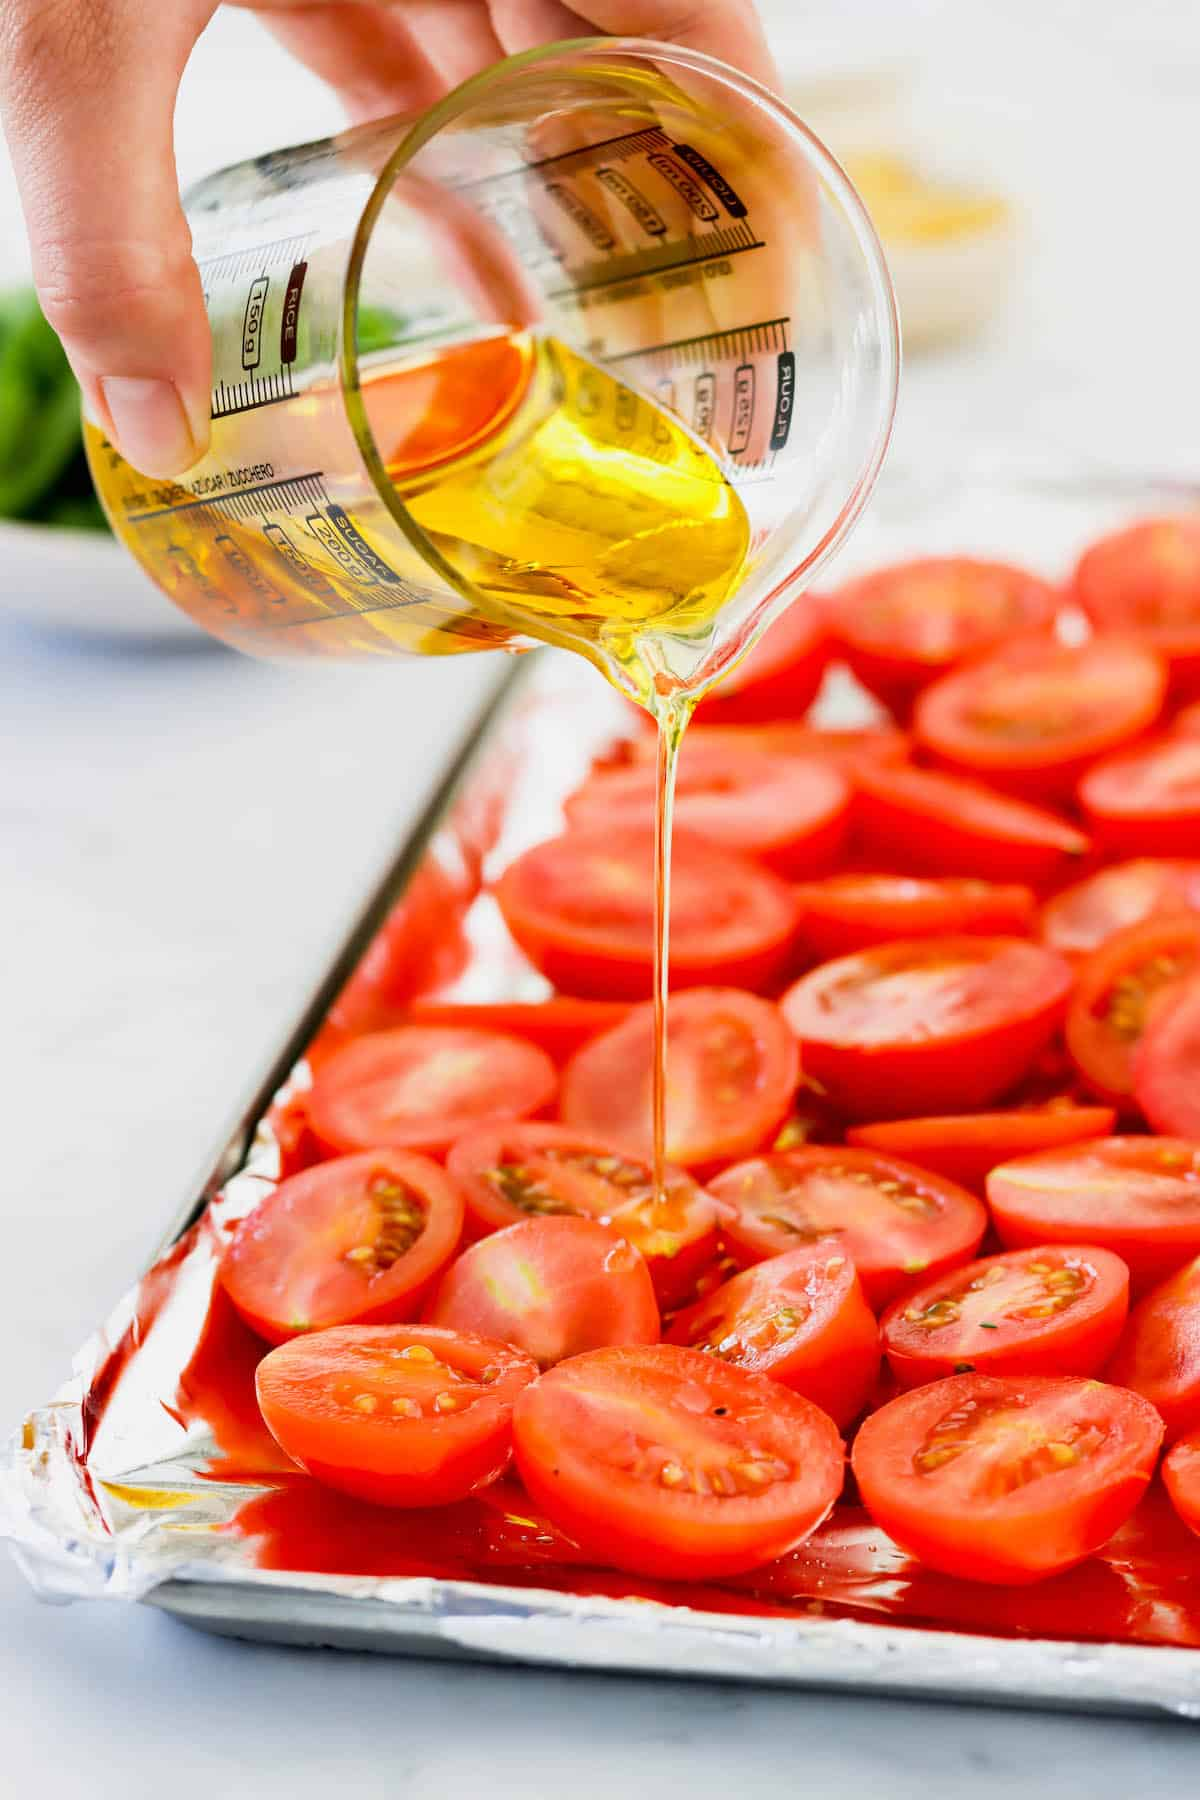 Olive oil being poured over a sheet pan of halved plum tomatoes